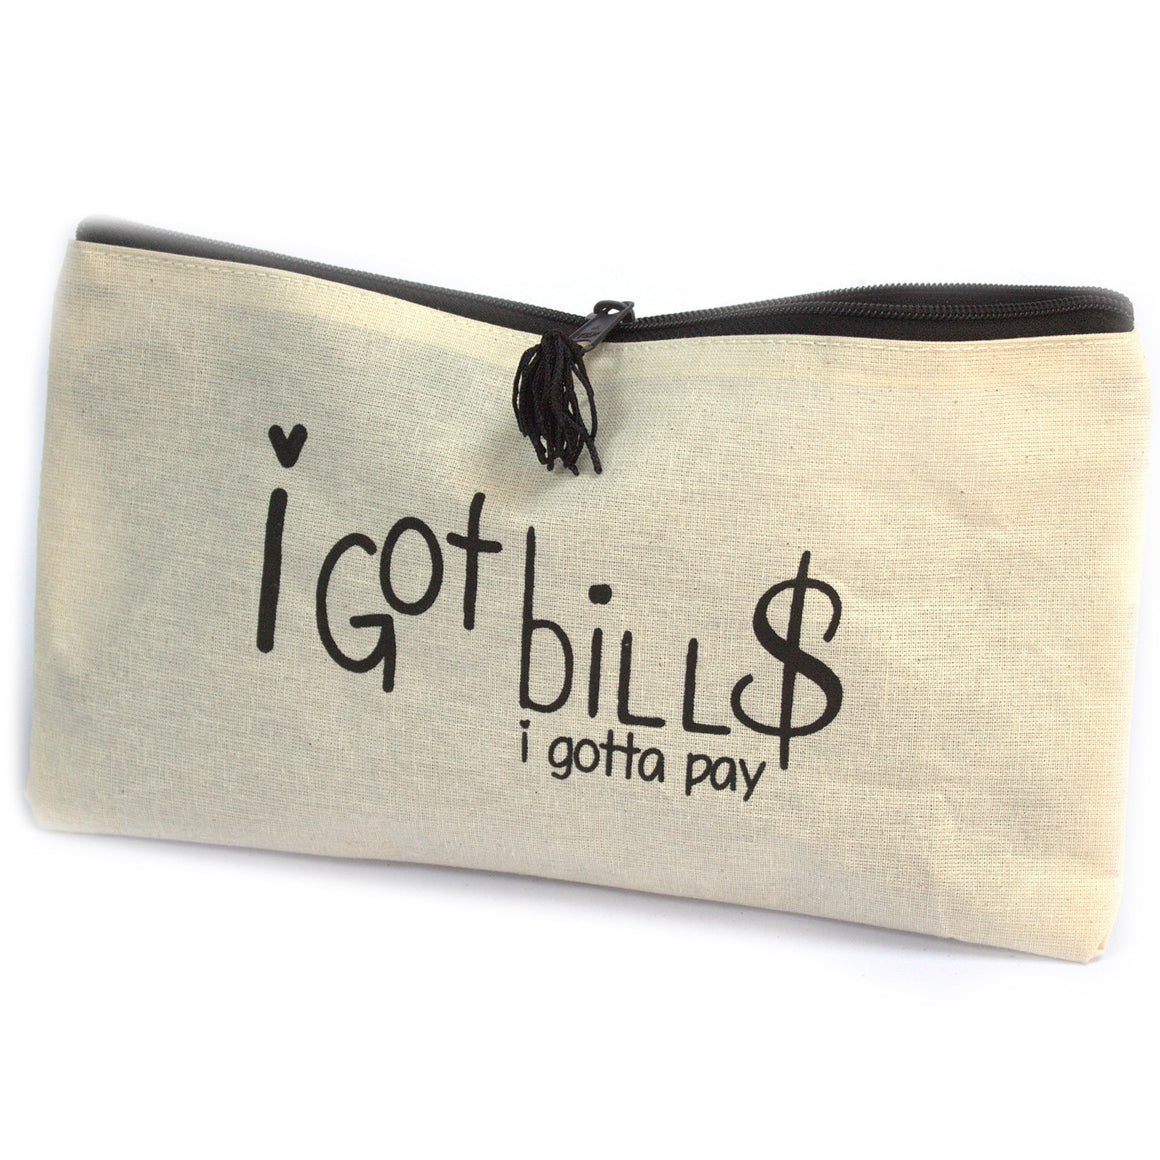 Get Organised Pouch - I Got Bills (I gotta pay)